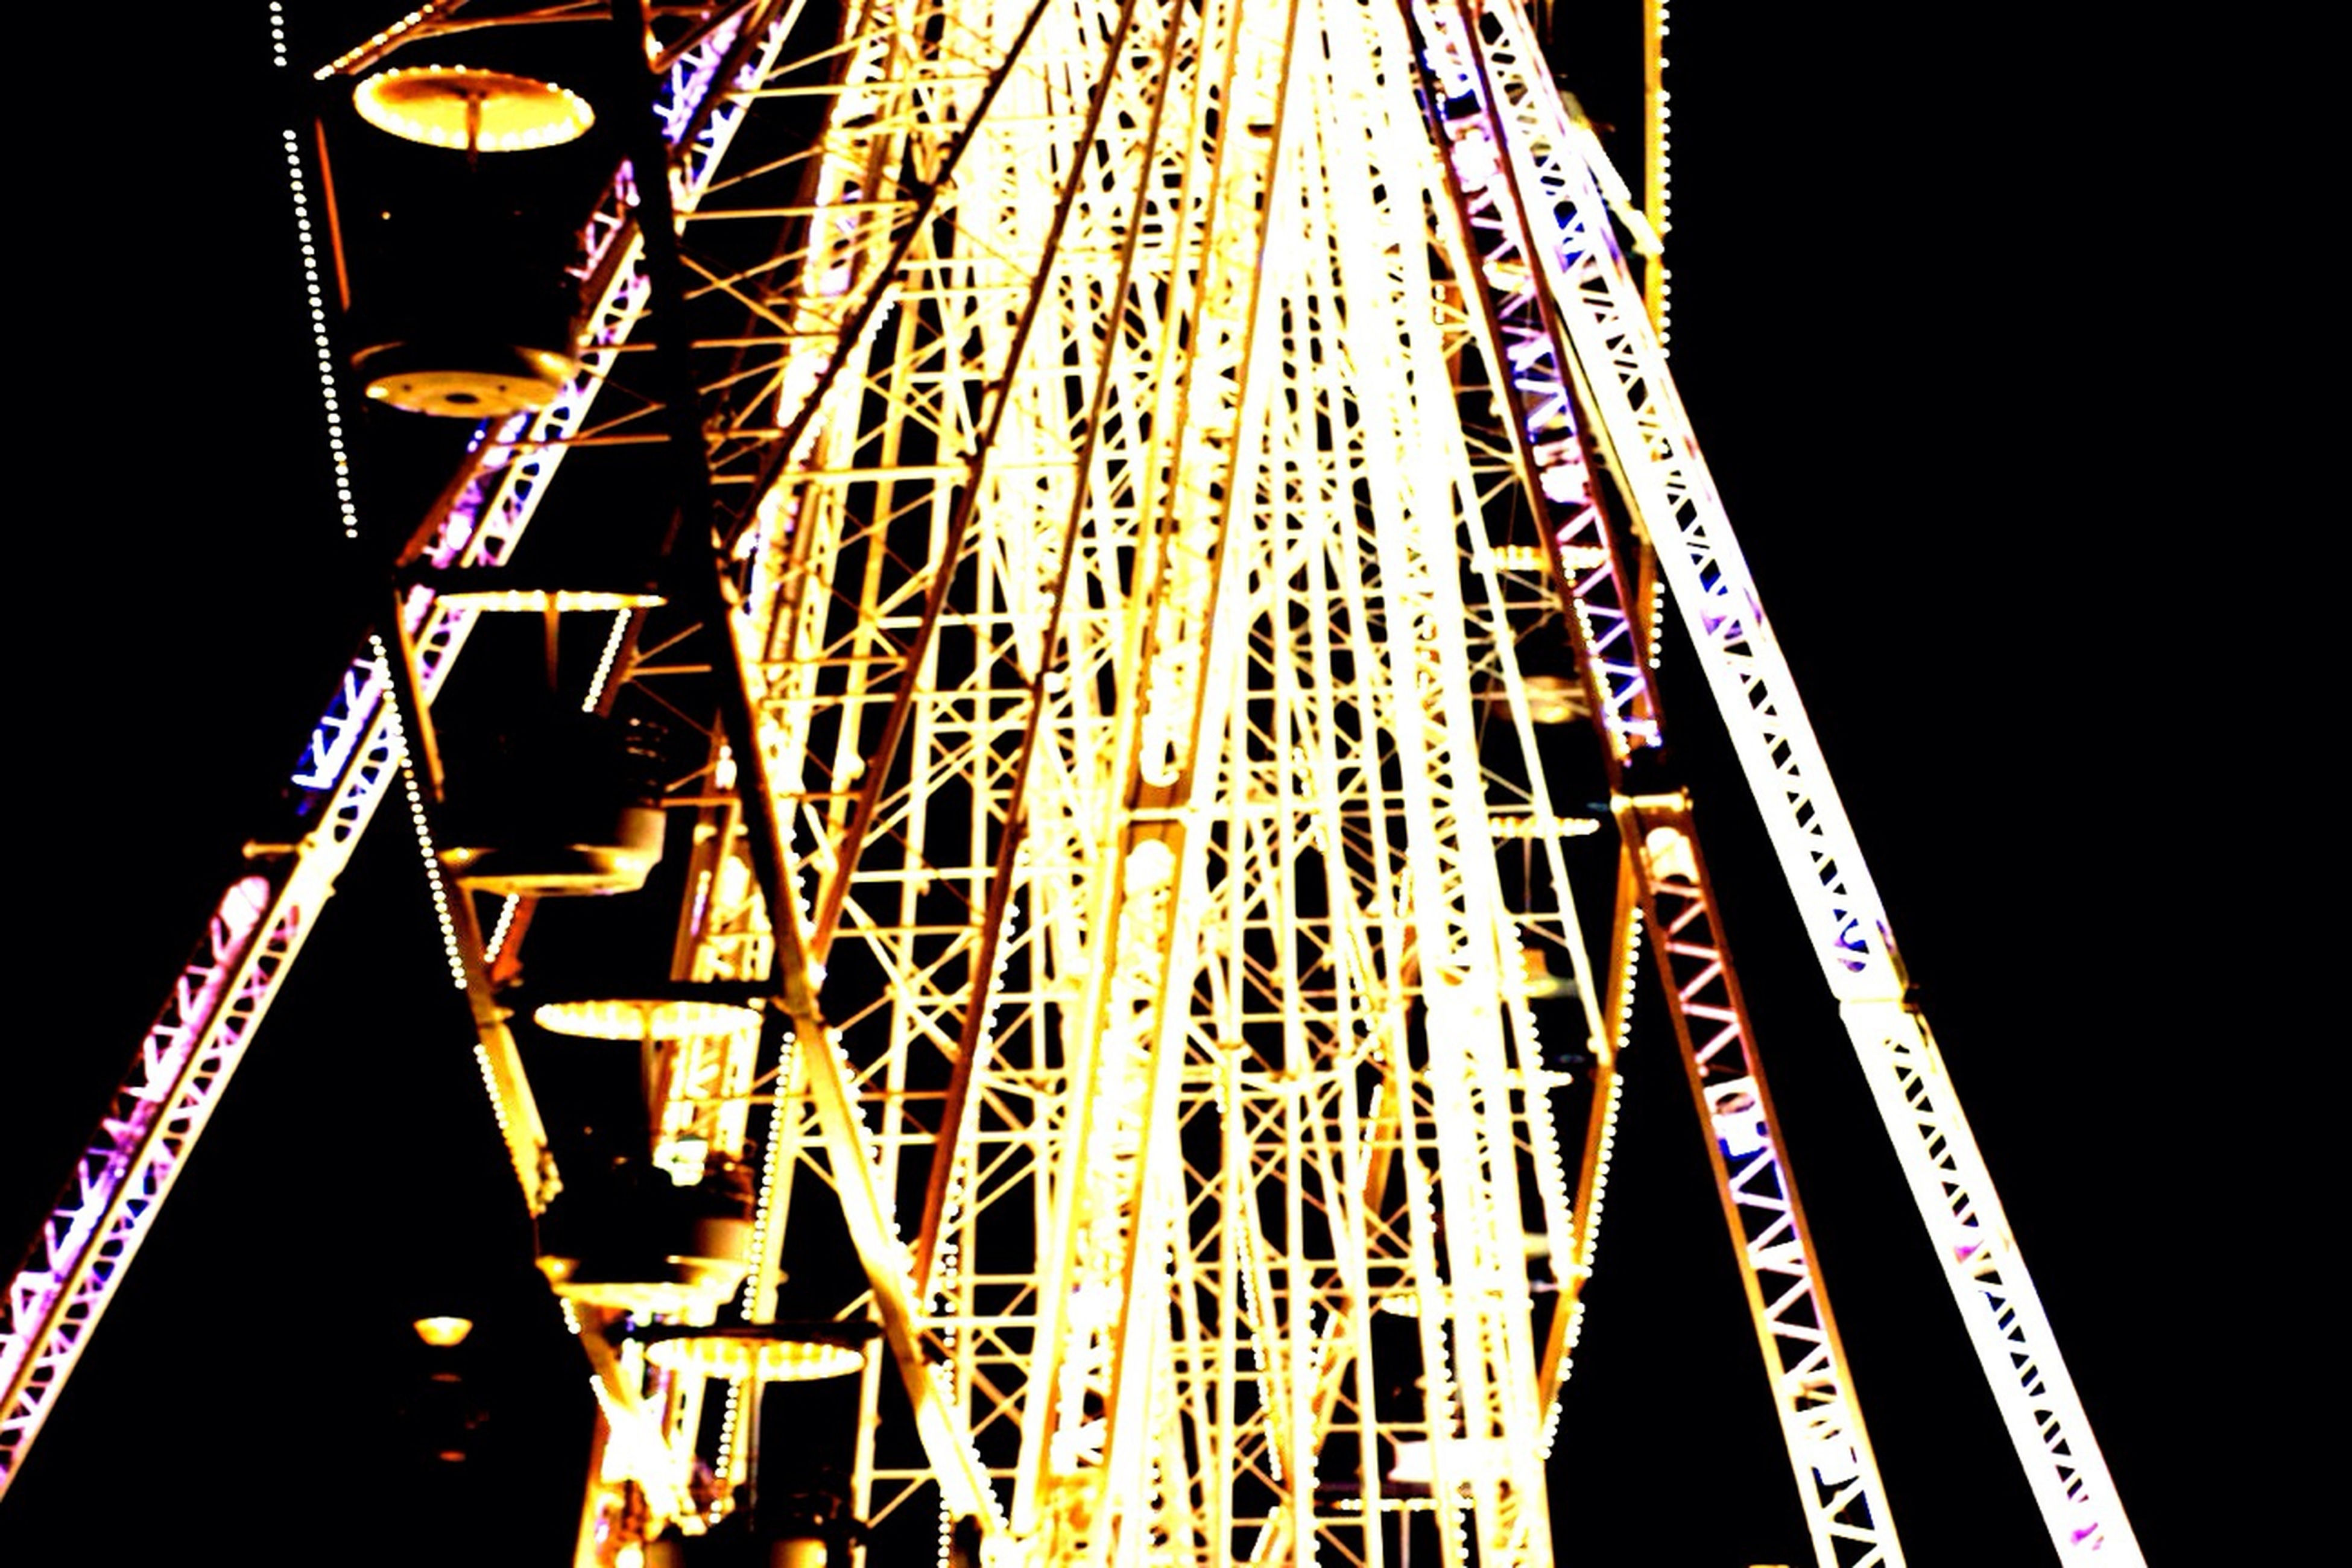 night, illuminated, metal, low angle view, arts culture and entertainment, connection, amusement park ride, amusement park, engineering, built structure, red, bridge - man made structure, ferris wheel, architecture, multi colored, transportation, metallic, outdoors, no people, sky